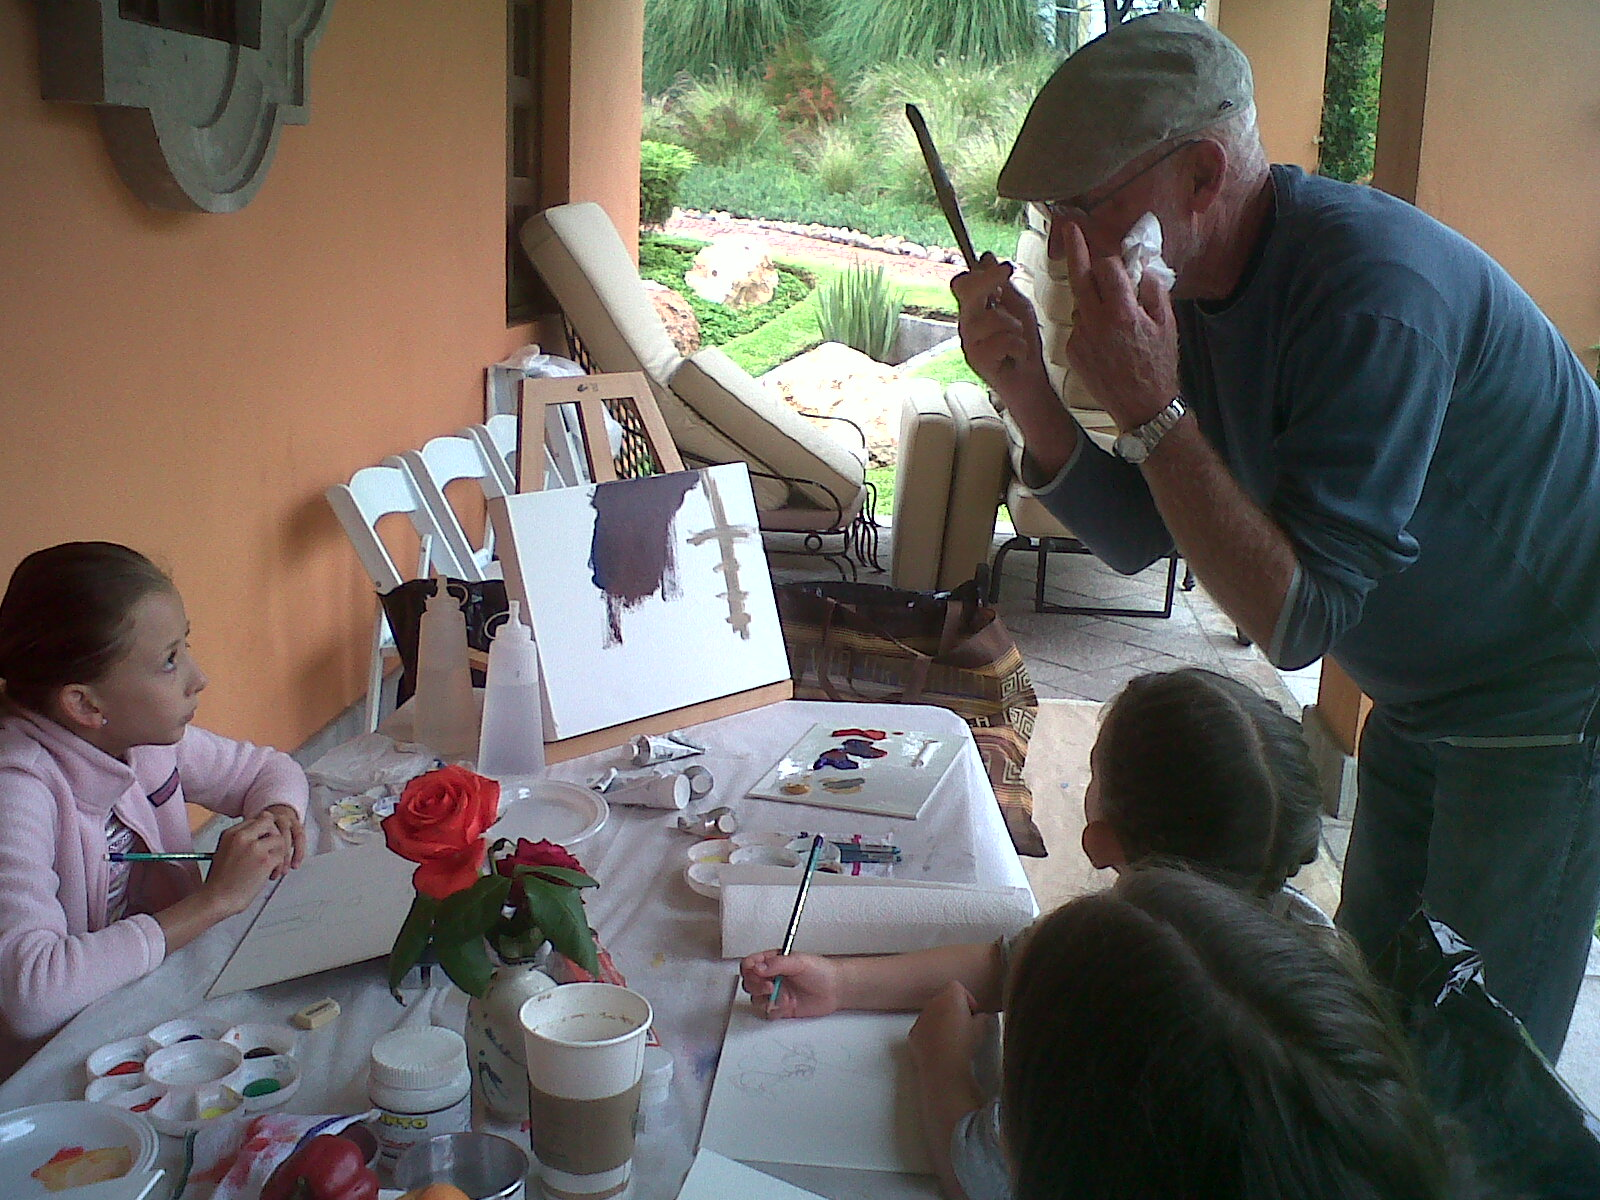 Artist Richard Trumbull with the  Children's Art Foundation  at Little Picasso Art Program, 2017